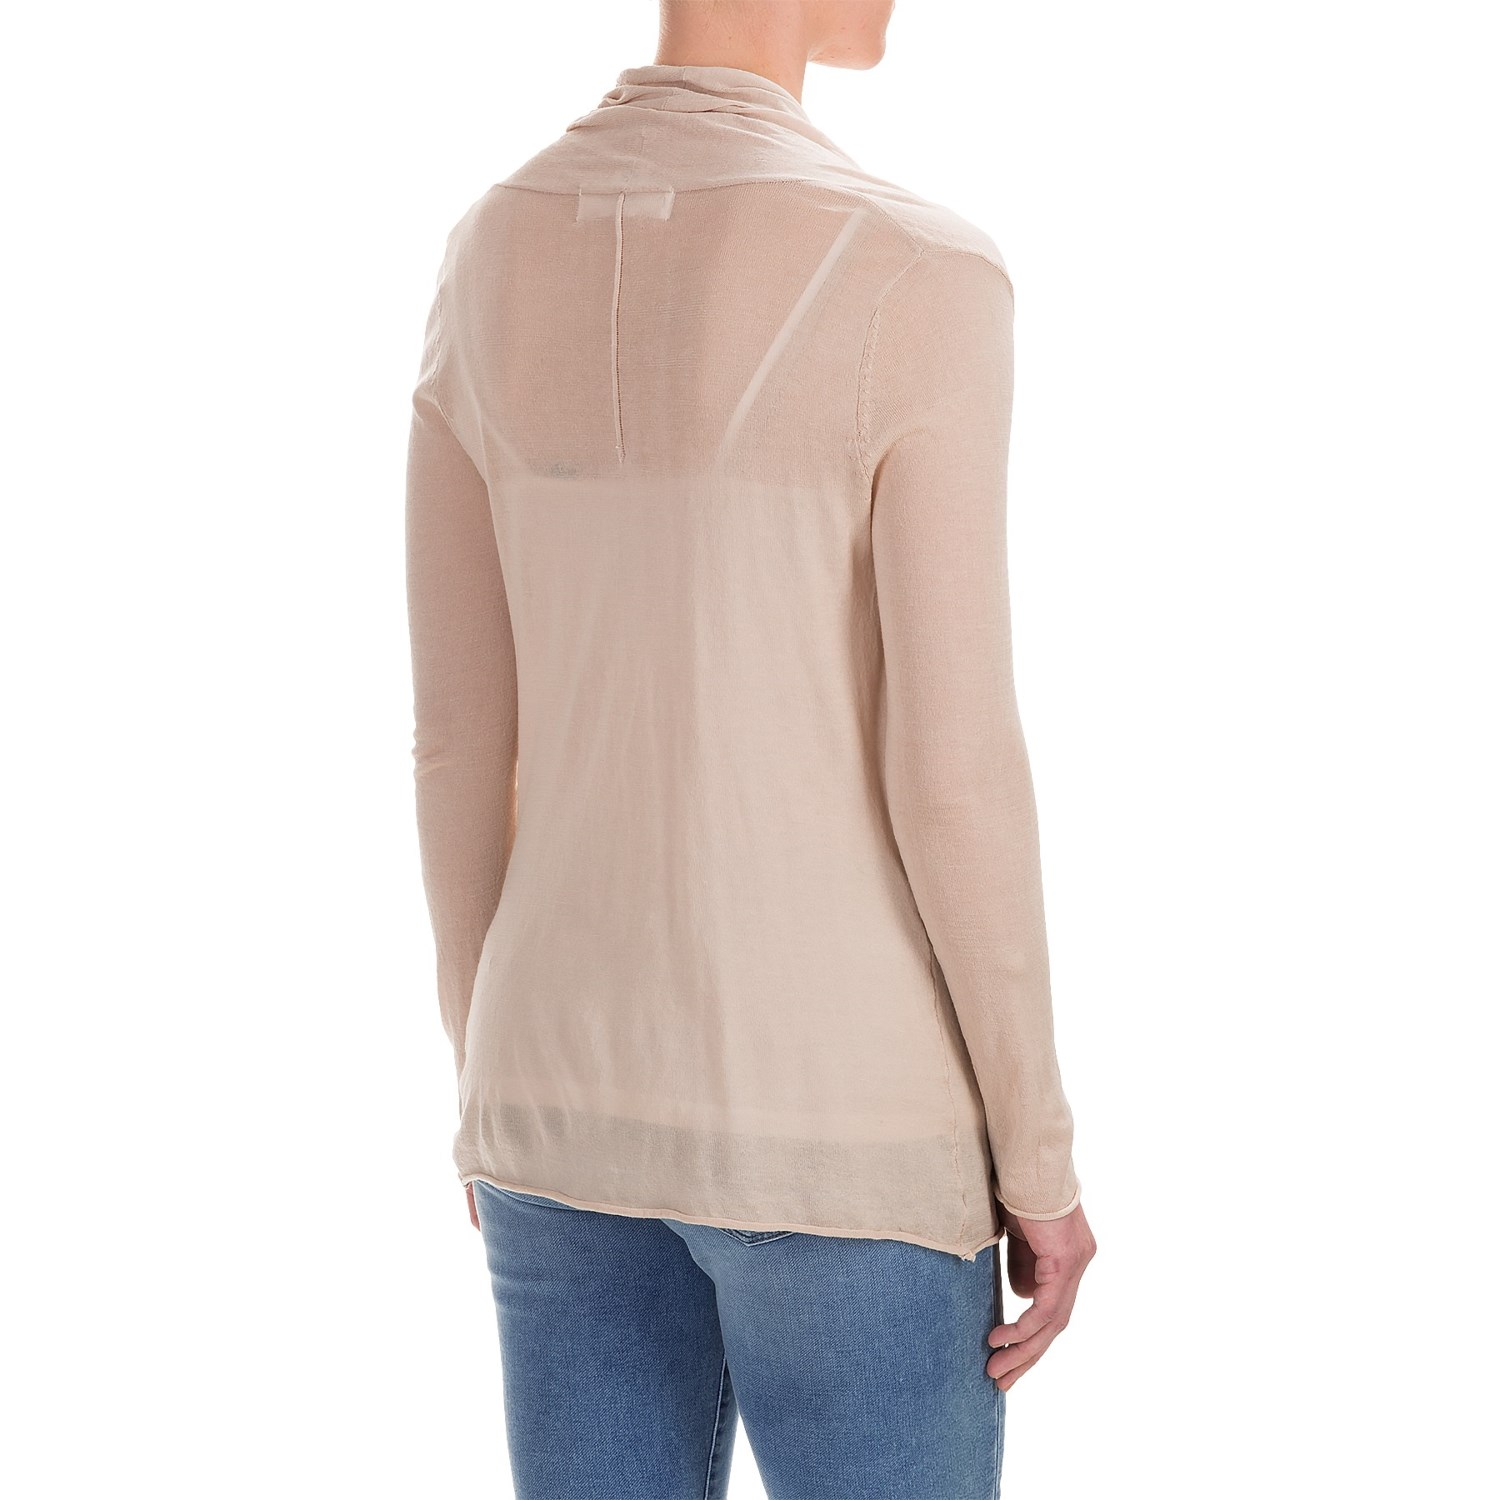 Workshop republic clothing open front cardigan shirt for for Long sweaters and shirts